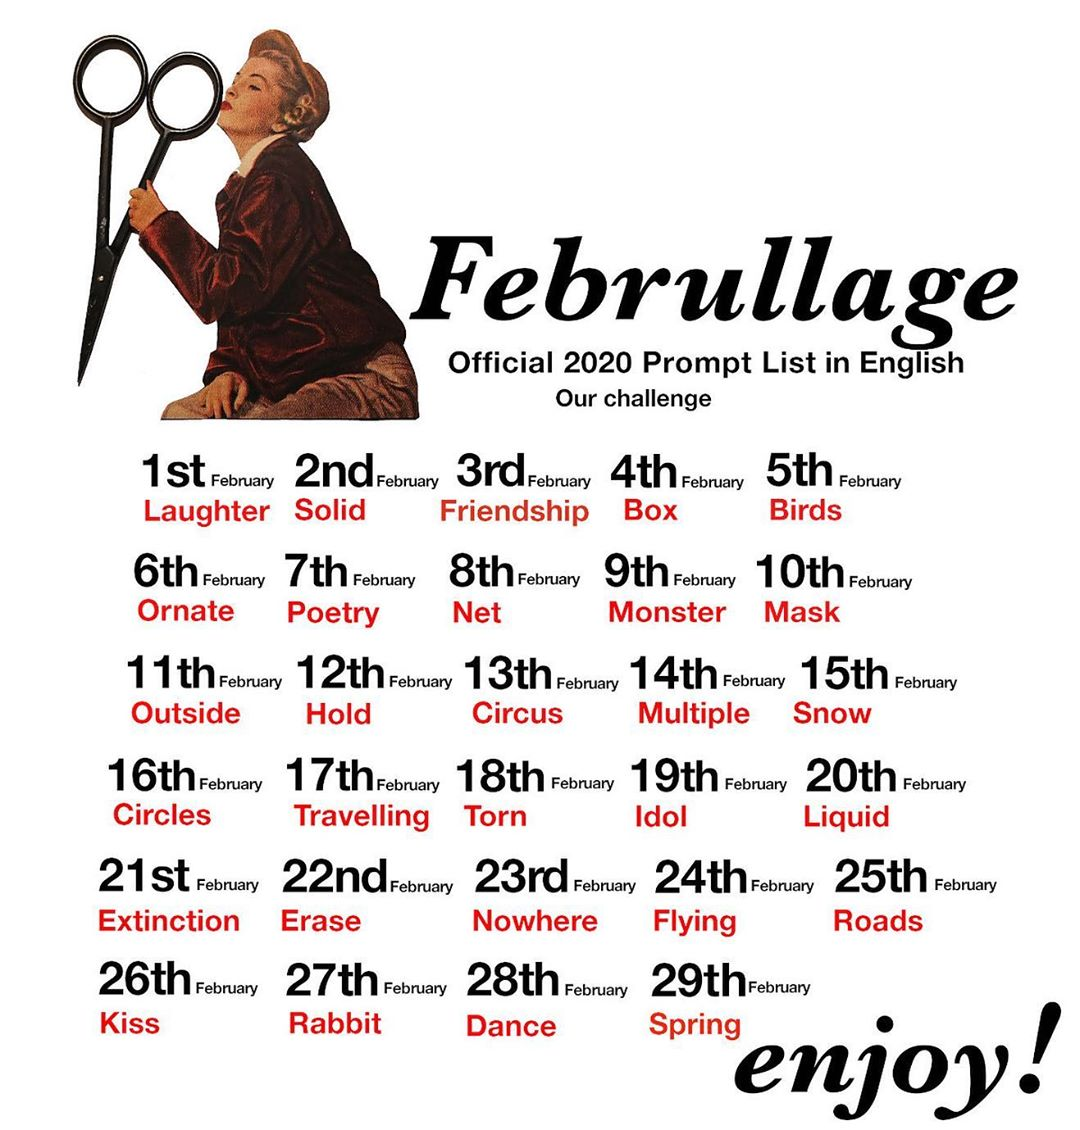 Februllage: February Collage Project